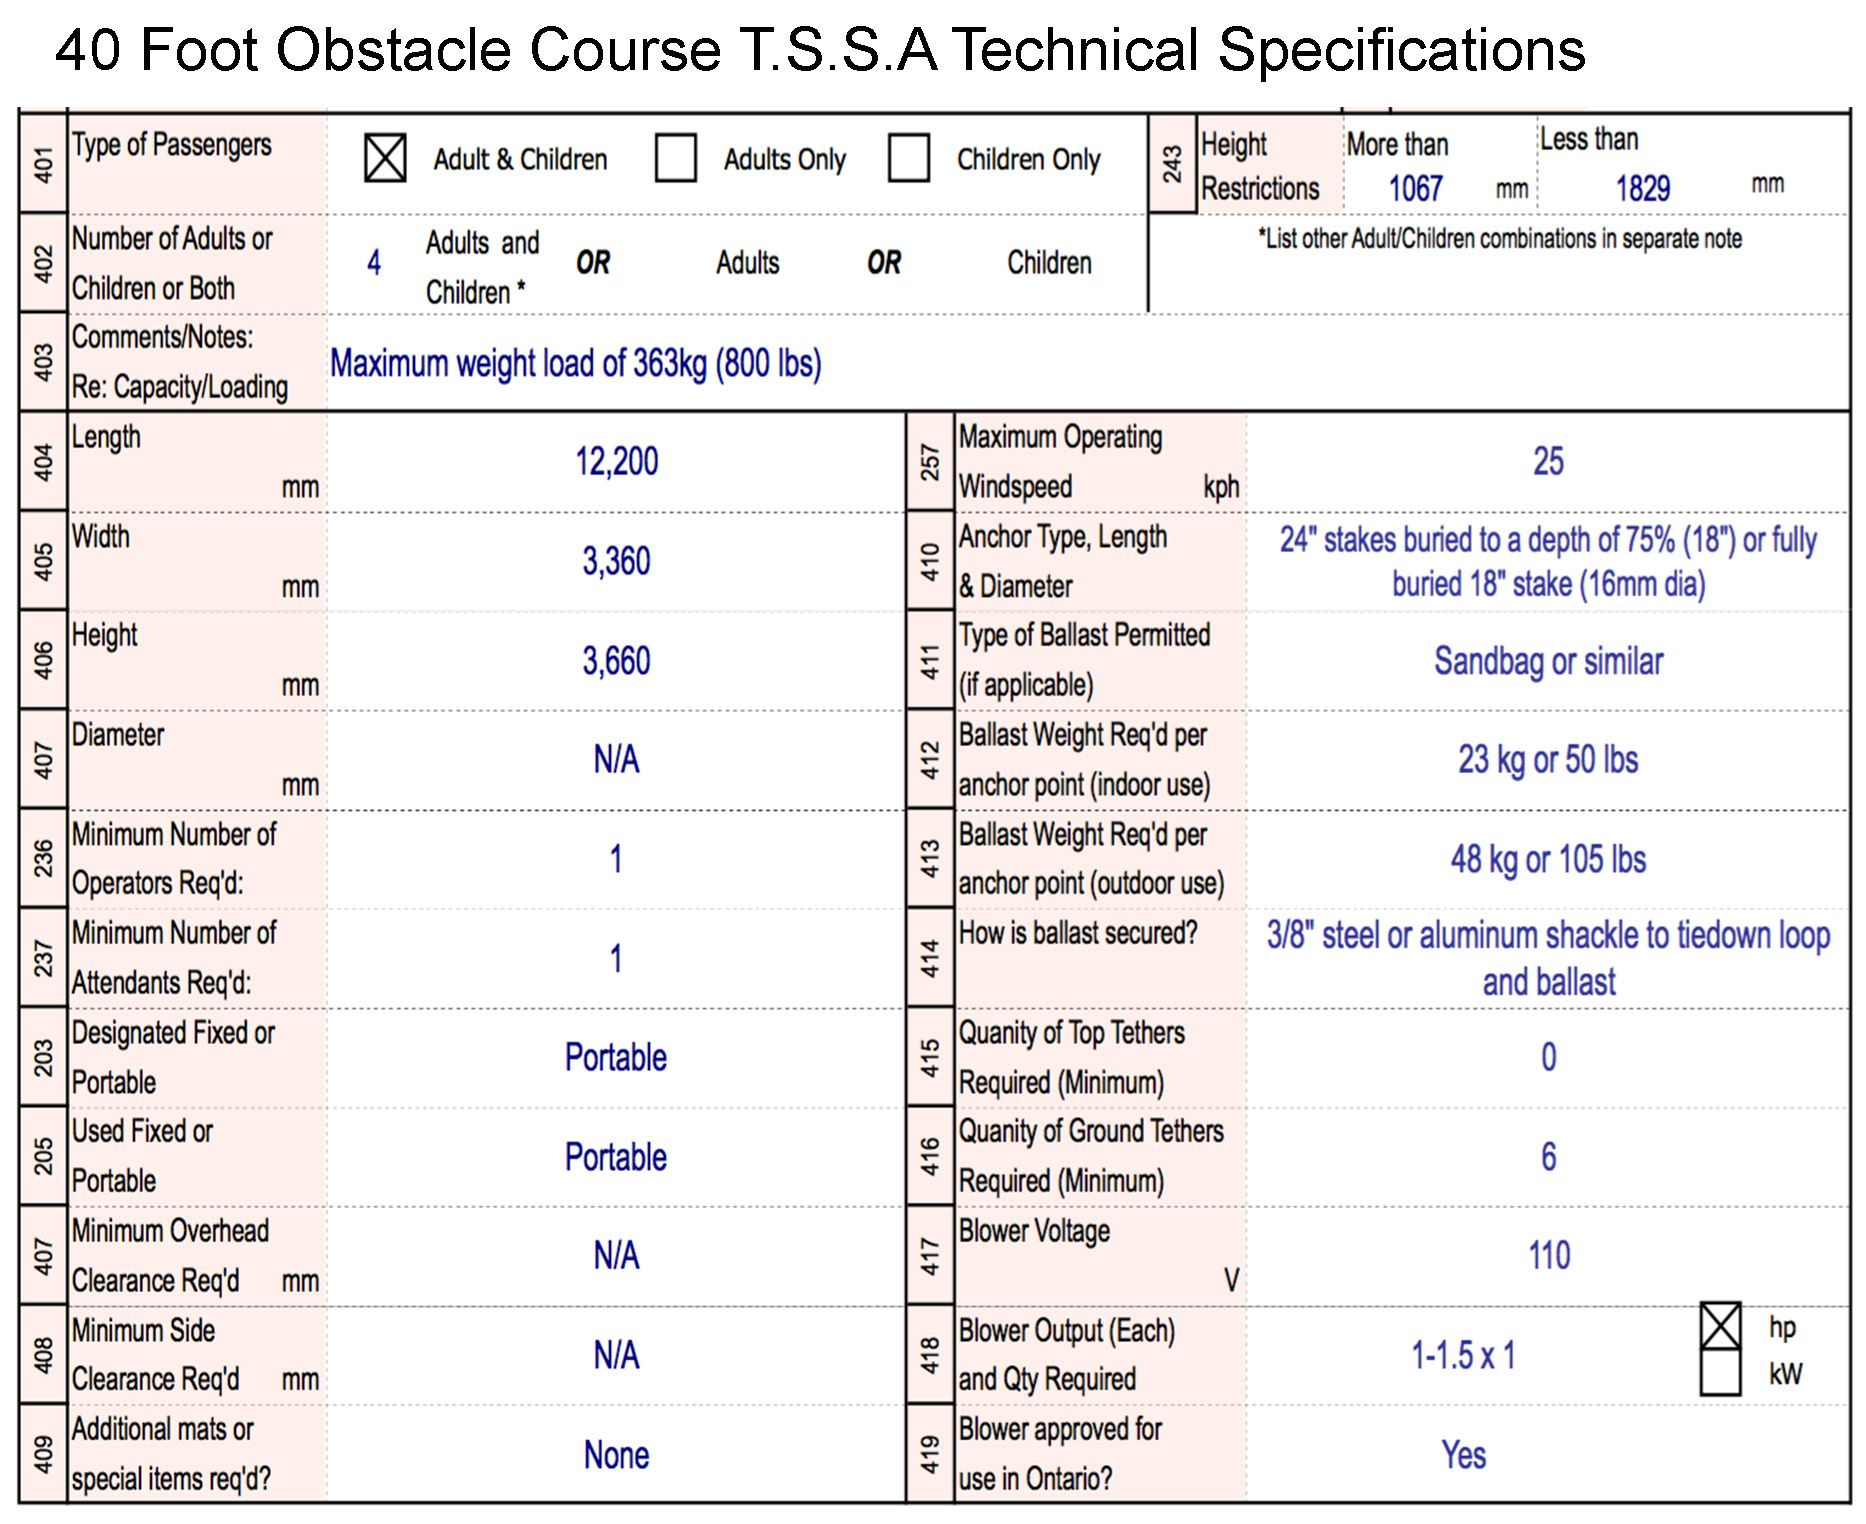 SPECS 40 Foot Obstacle Course compressed